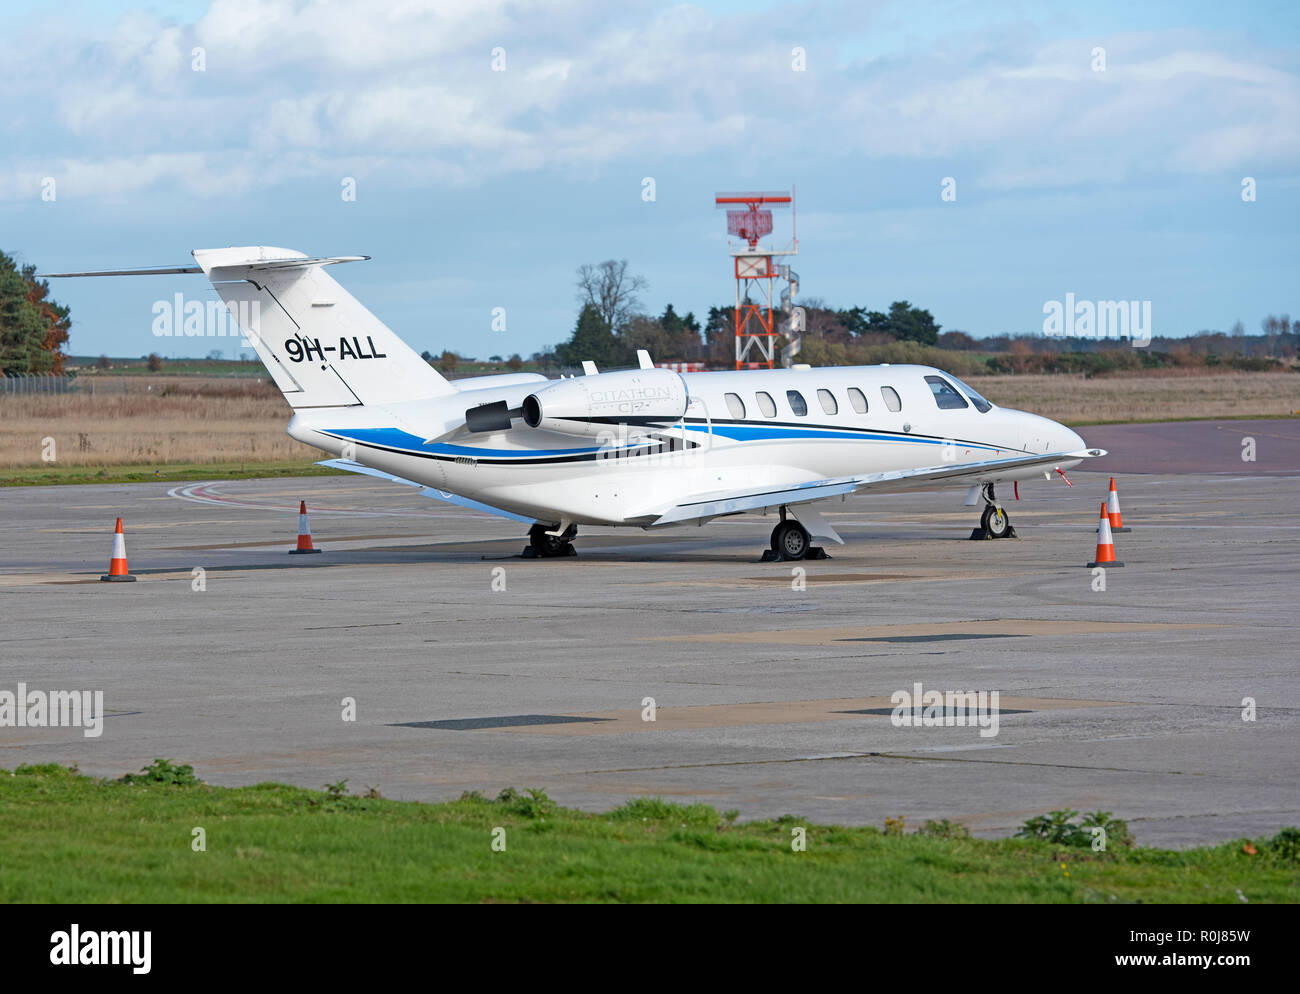 Registered in Malta A cessna Citation 525 parked after its arrival at Inverness Dalcross airport Scotland.UK. Stock Photo